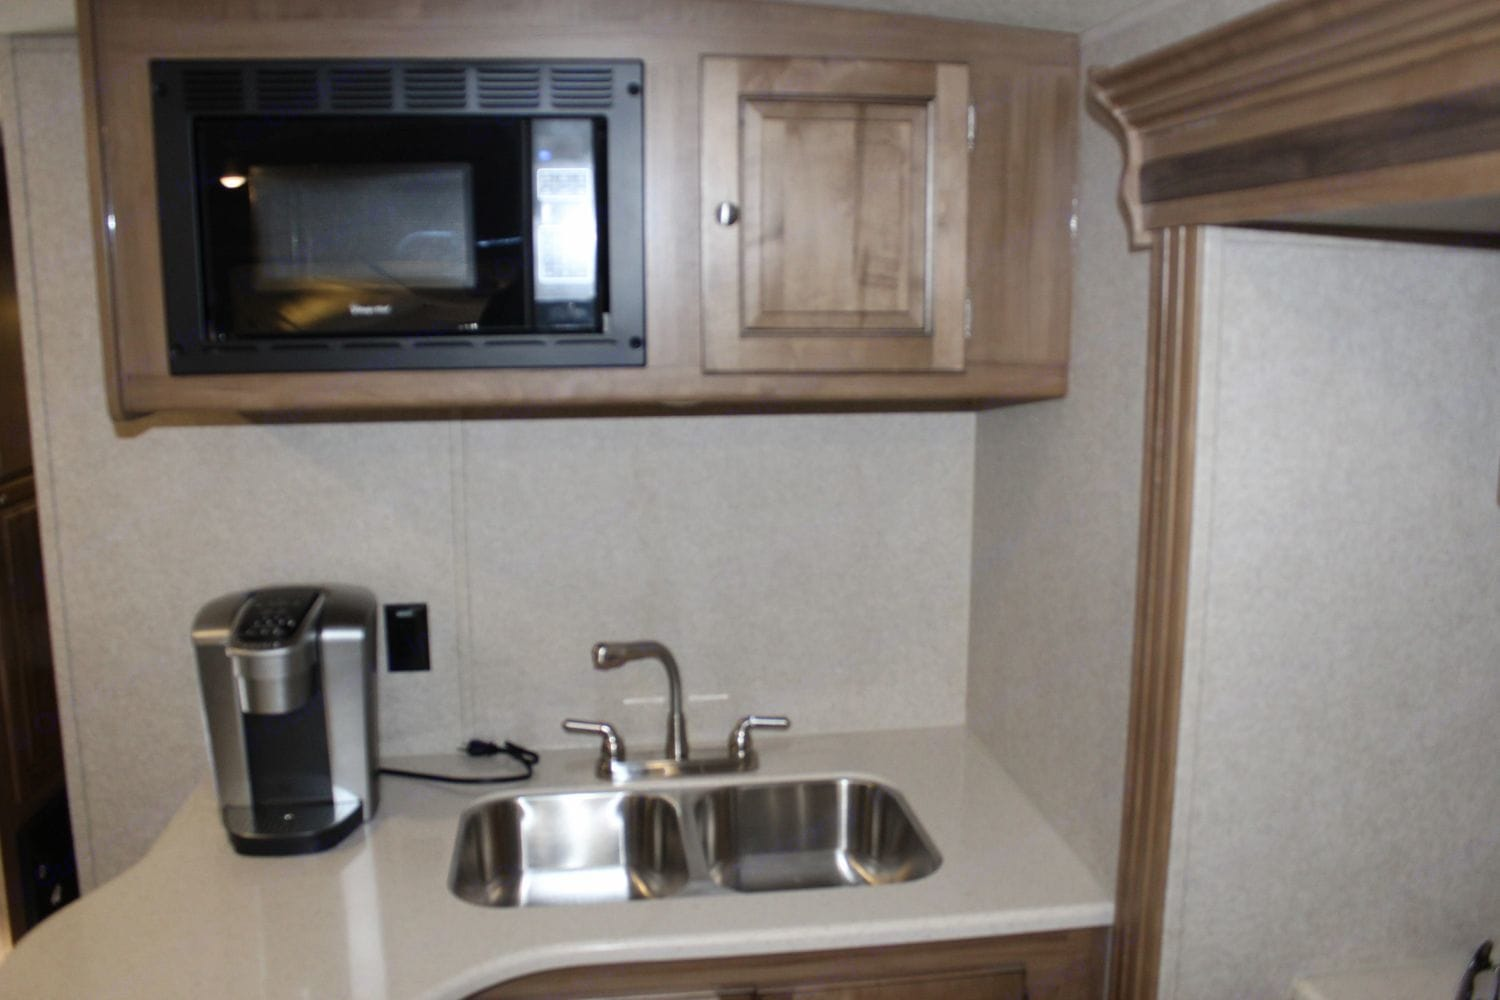 Sink & Microwave. Two basin sink makes it easy to do dishes.  The microwave only works when trailer is on generator power or plugged into the grid.. Forest River Rockwood Roo FL 2018